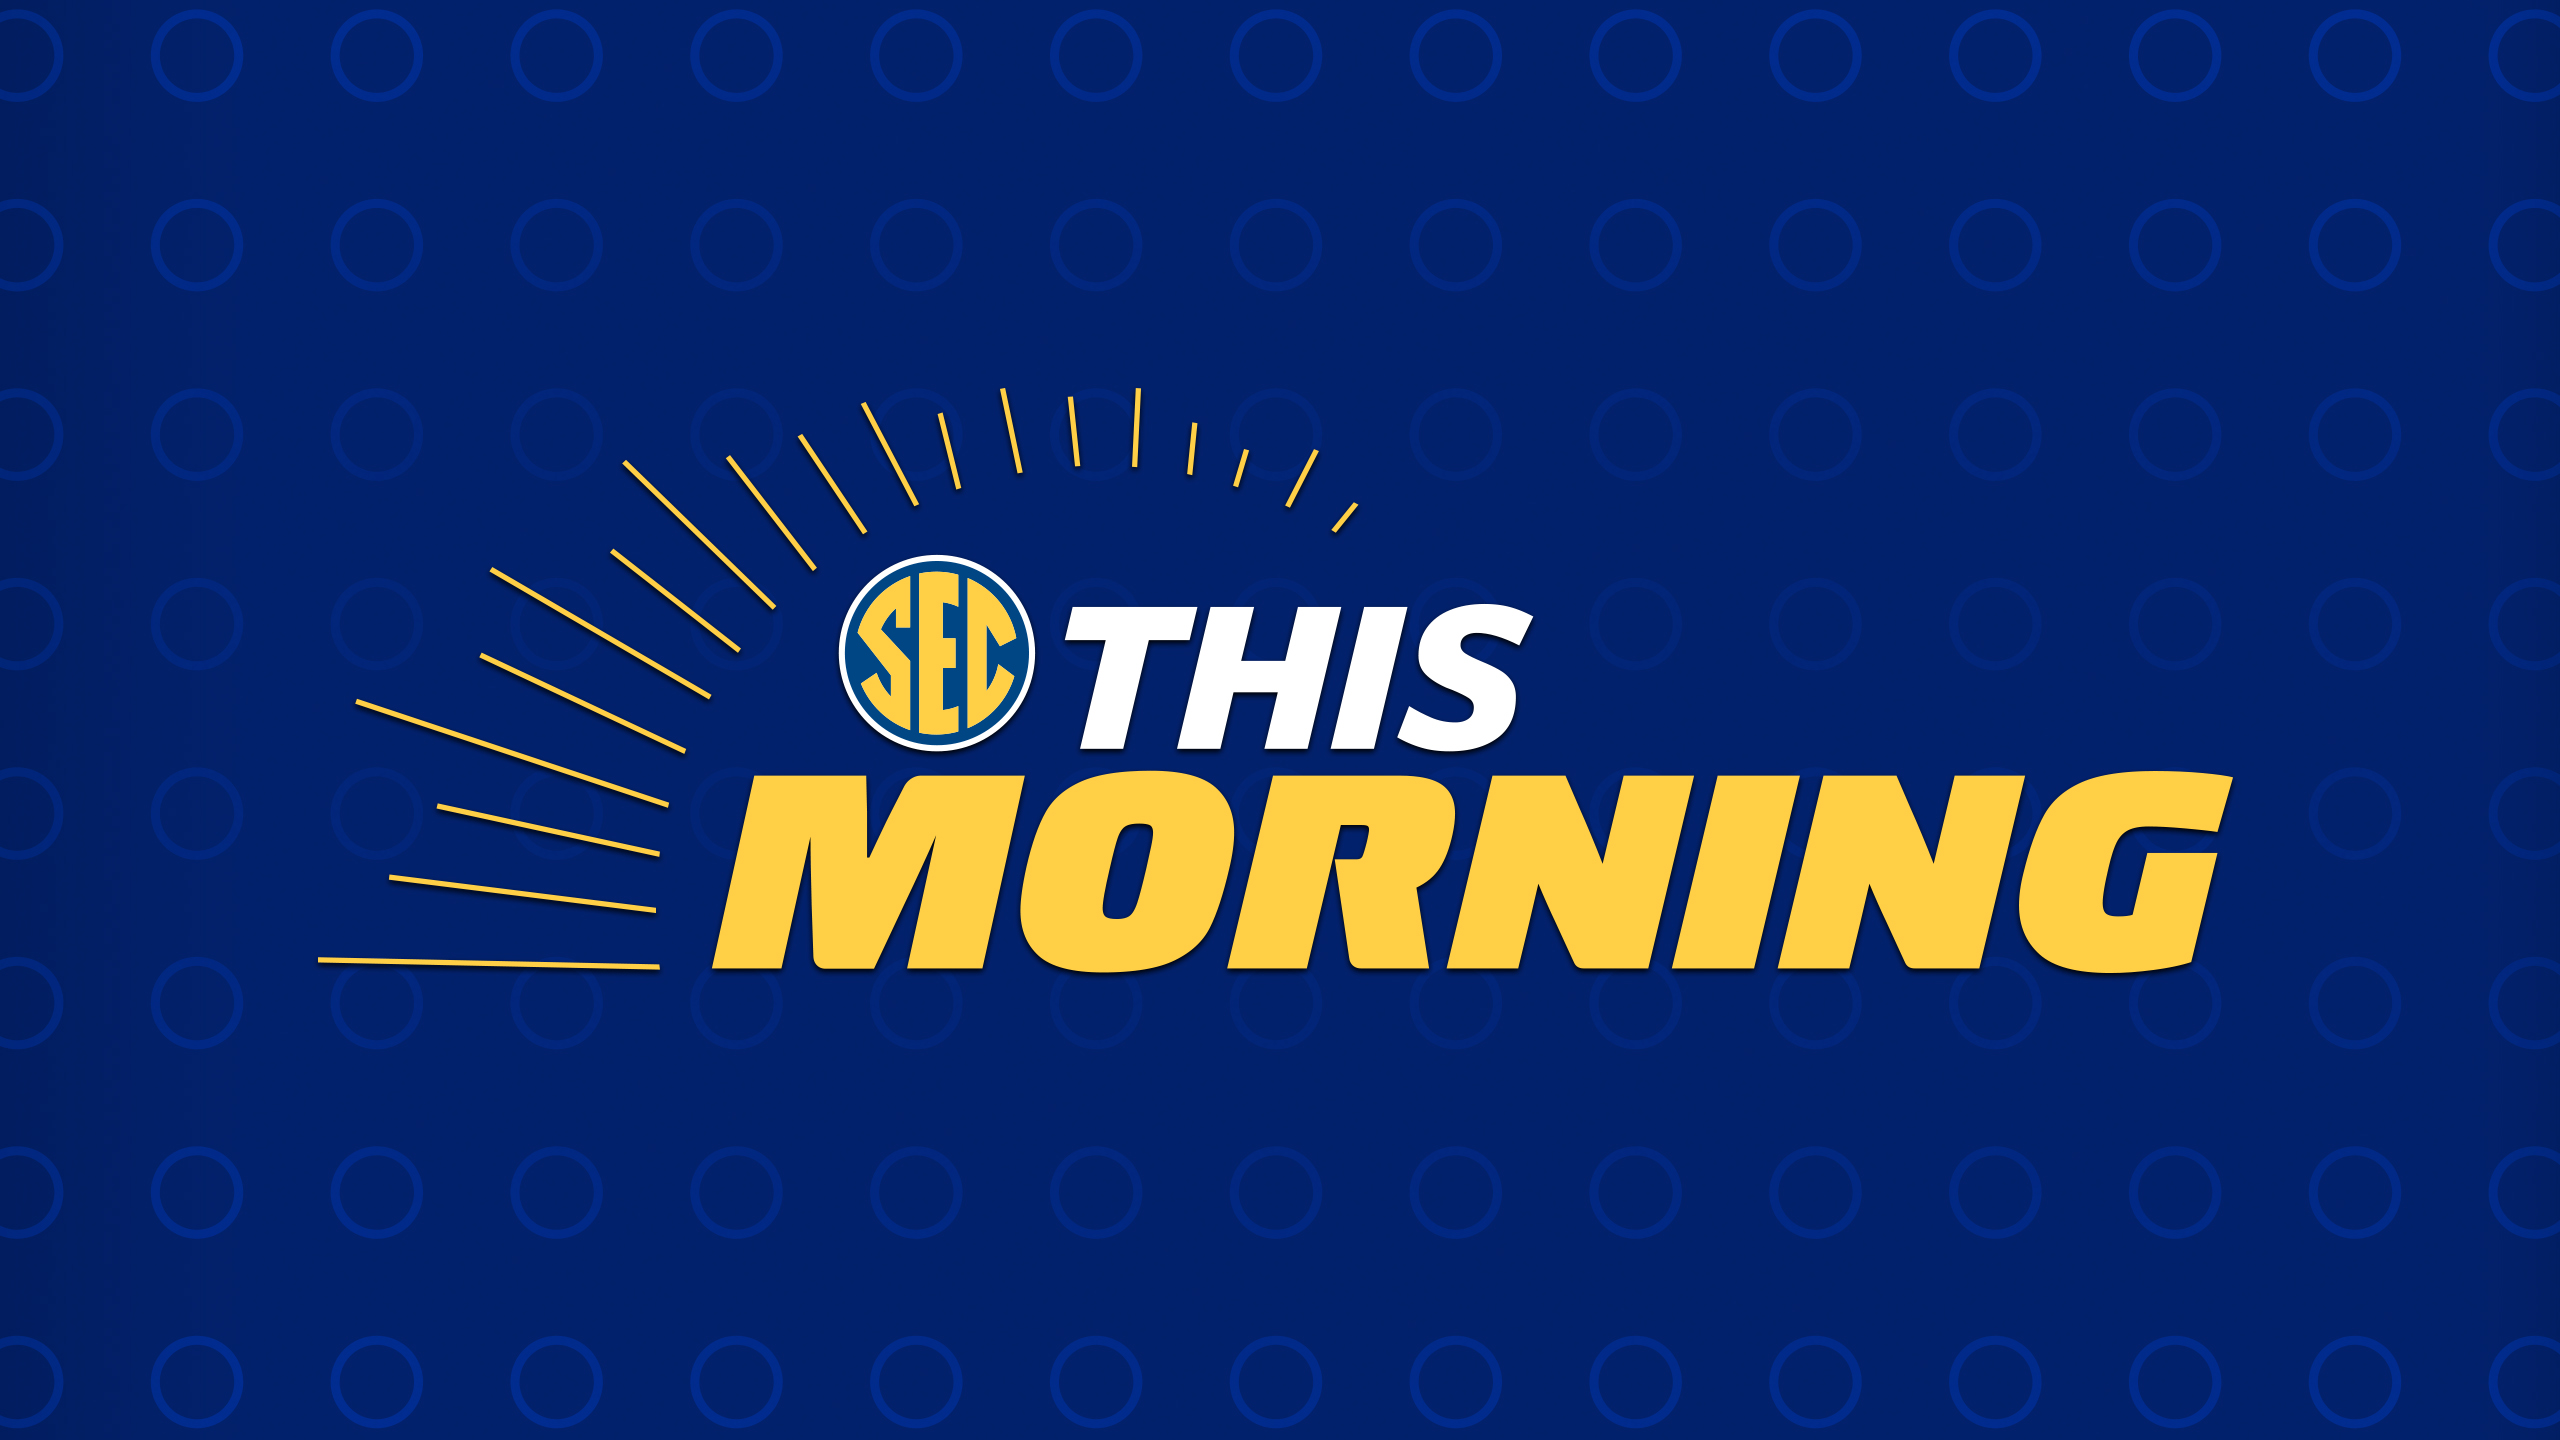 Best of SEC This Morning